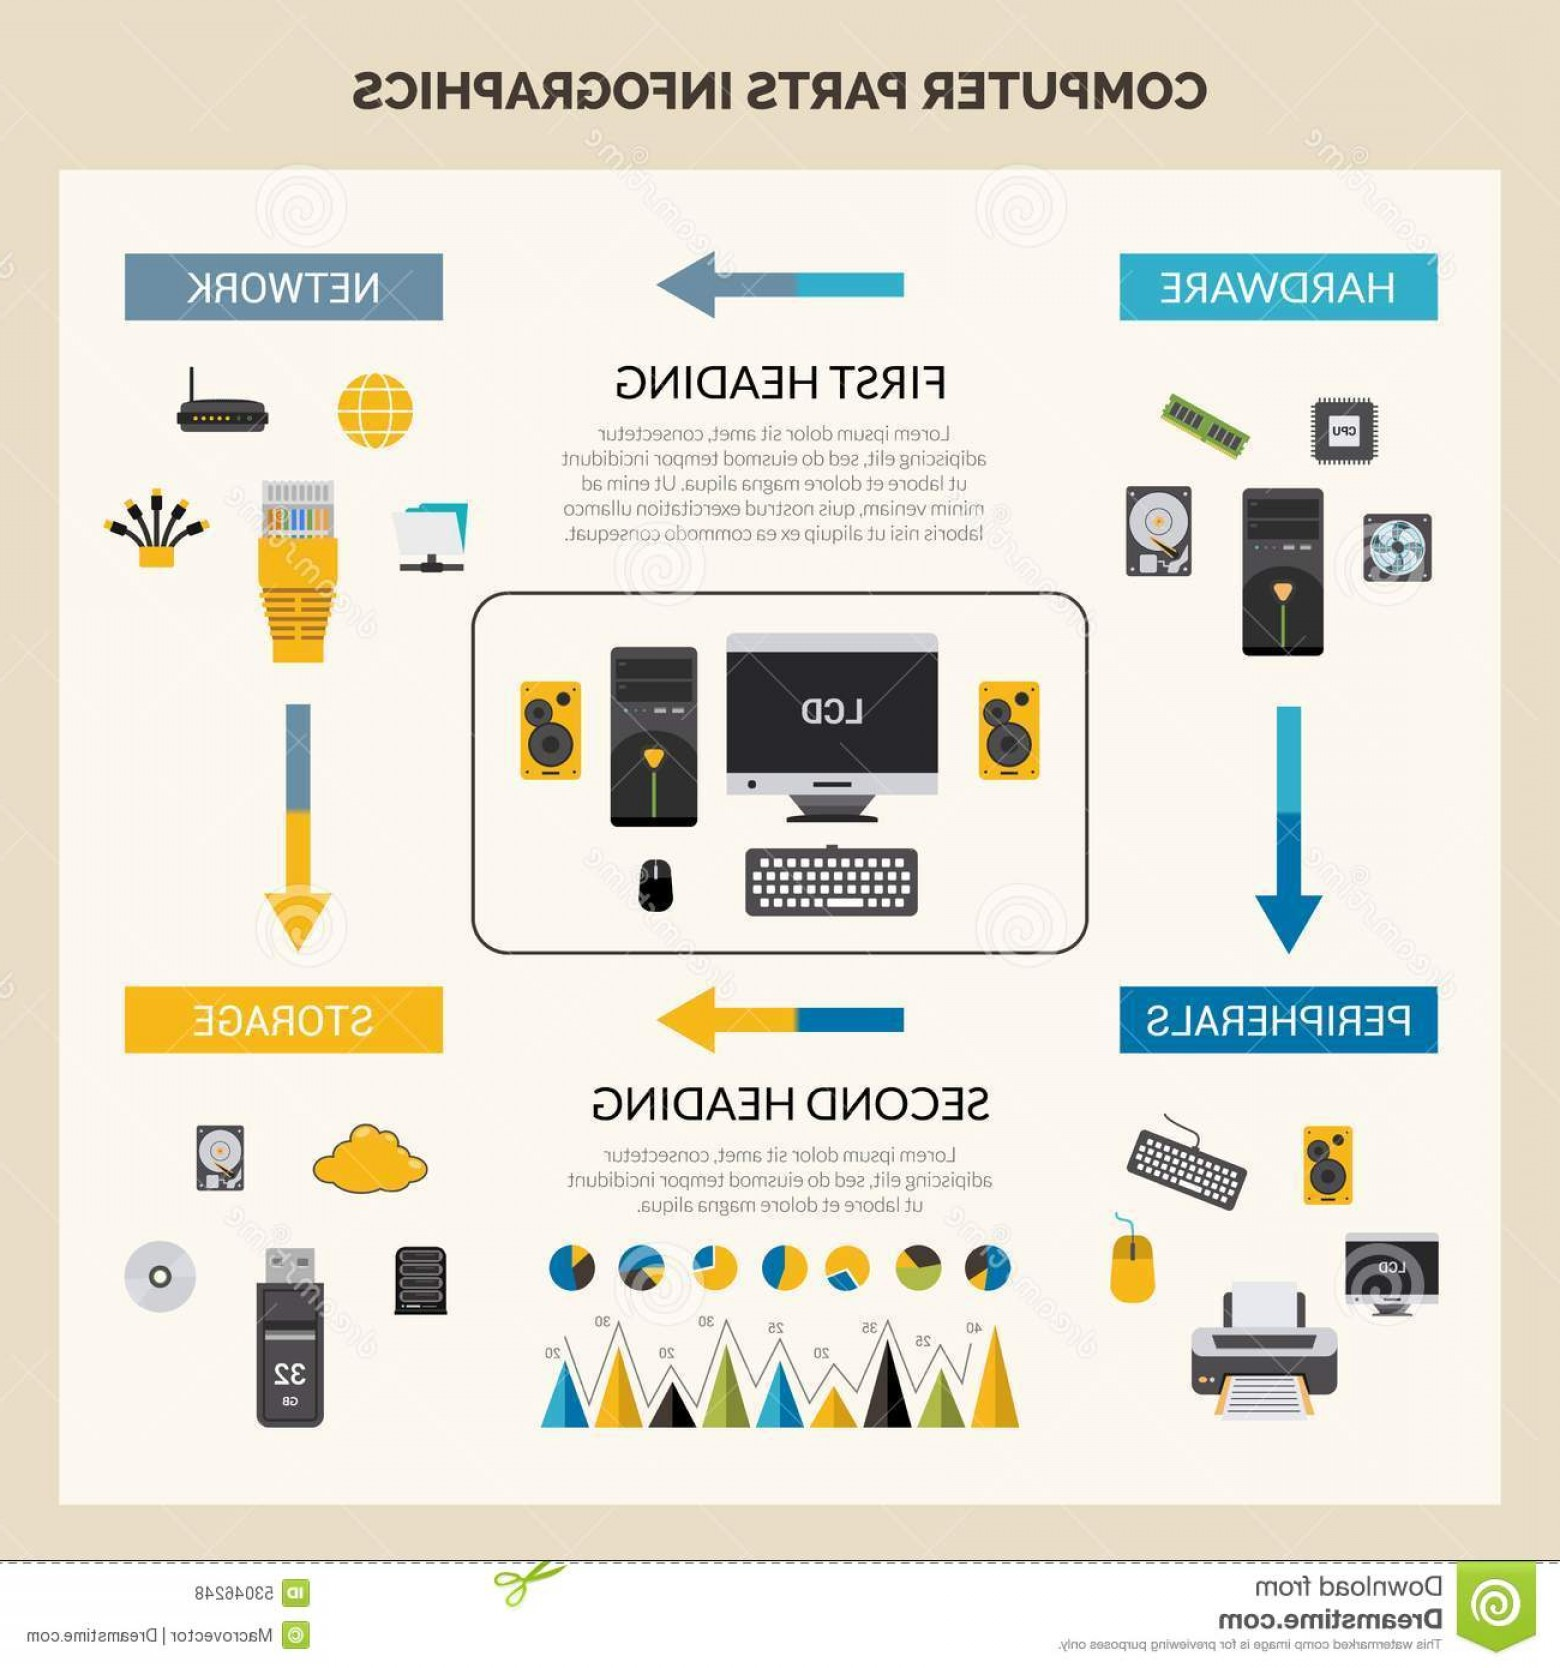 Vector Travel Cooler Parts: Stock Illustration Computer Parts Infographic Set Hardware Processor Peripherals Symbols Vector Illustration Image